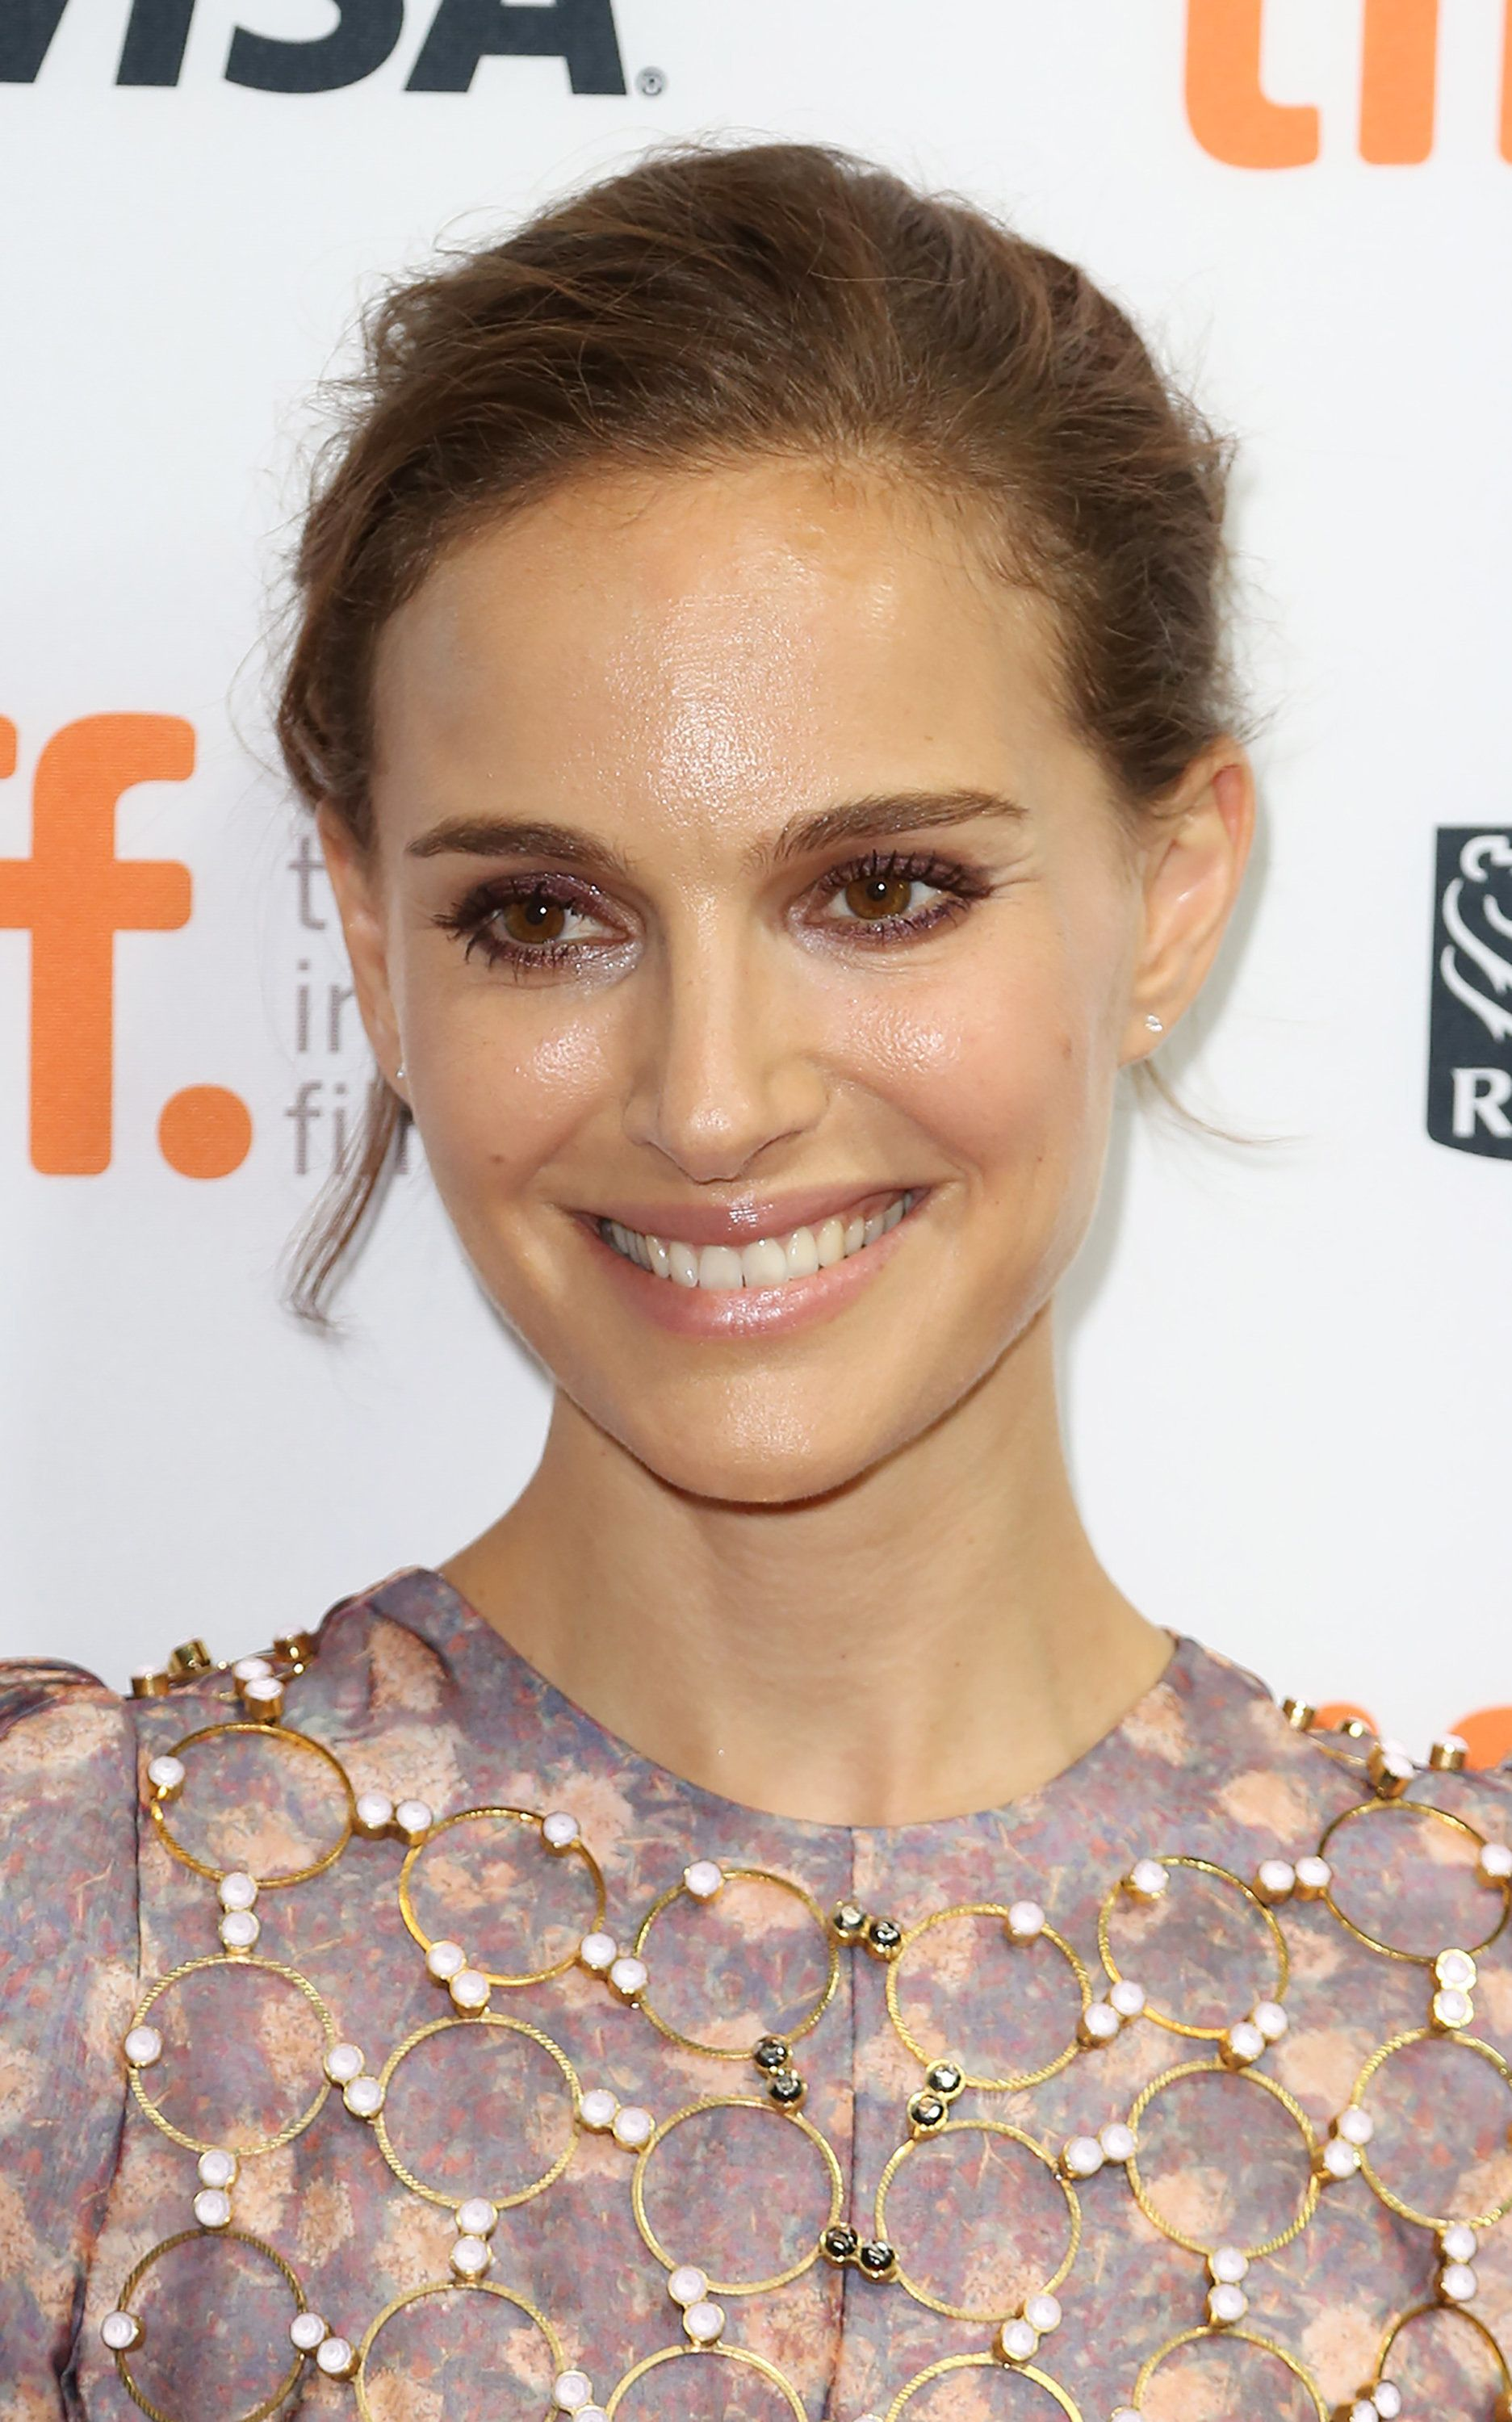 TORONTO, ON - SEPTEMBER 10:  Natalie Portman attends the 4th annual festival kick-off fundraising soiree during the 2015 Toronto International Film Festival at TIFF Bell Lightbox on September 9, 2015 in Toronto, Canada.  (Photo by Walter McBride/FilmMagic)